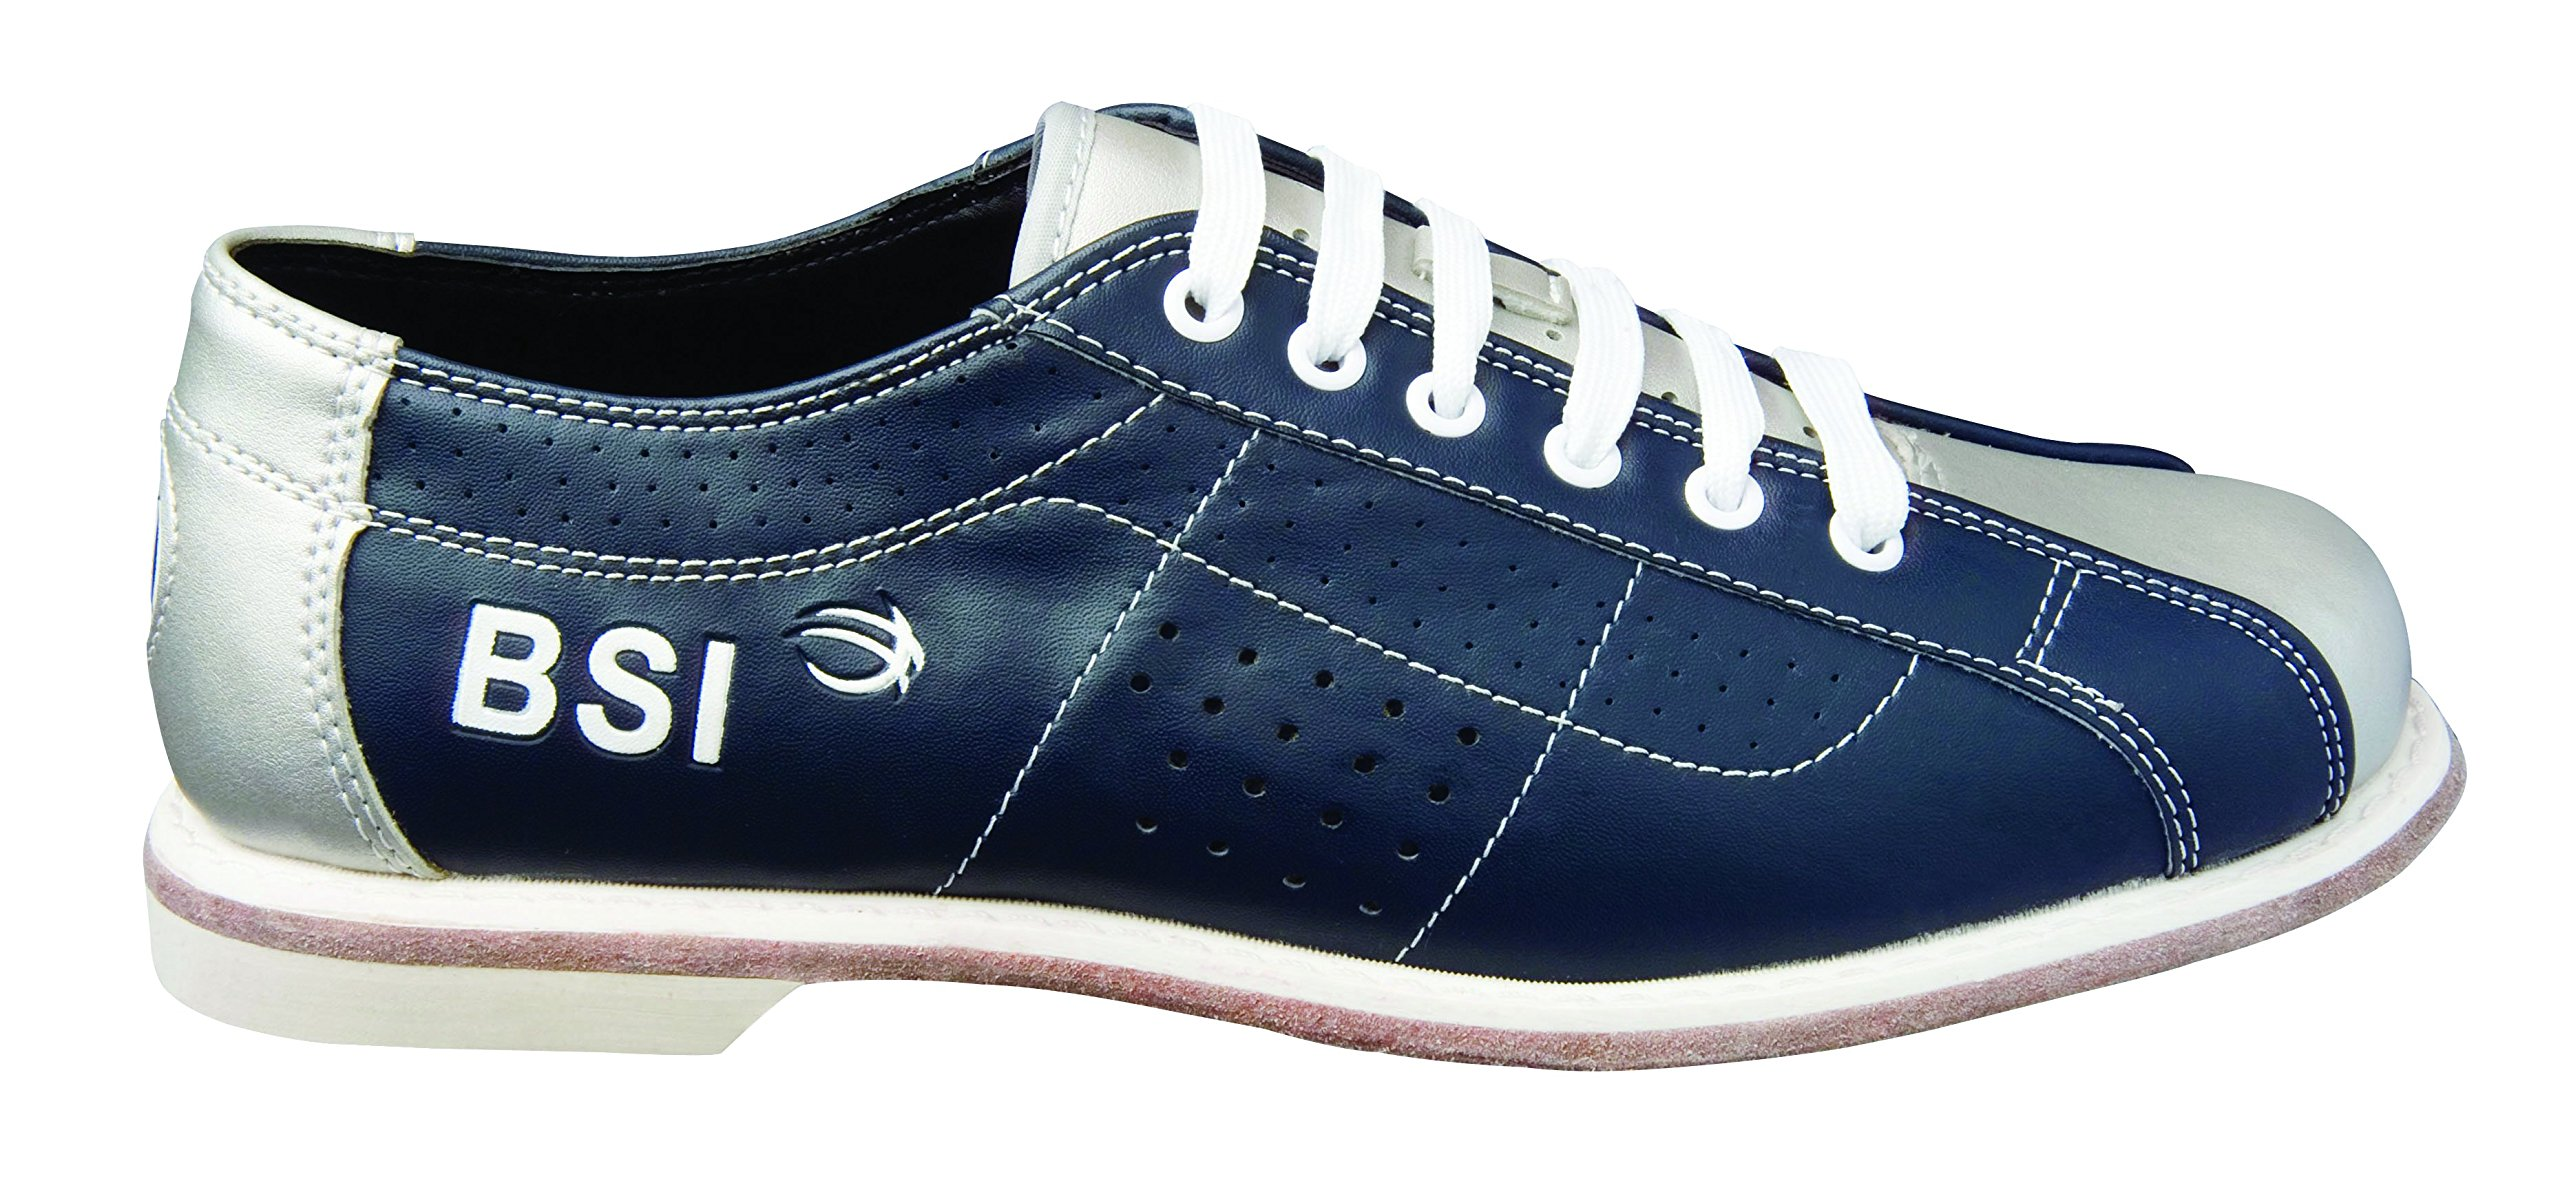 BSI Dual Size Rental Shoes, Blue/Silver, 8 by BSI